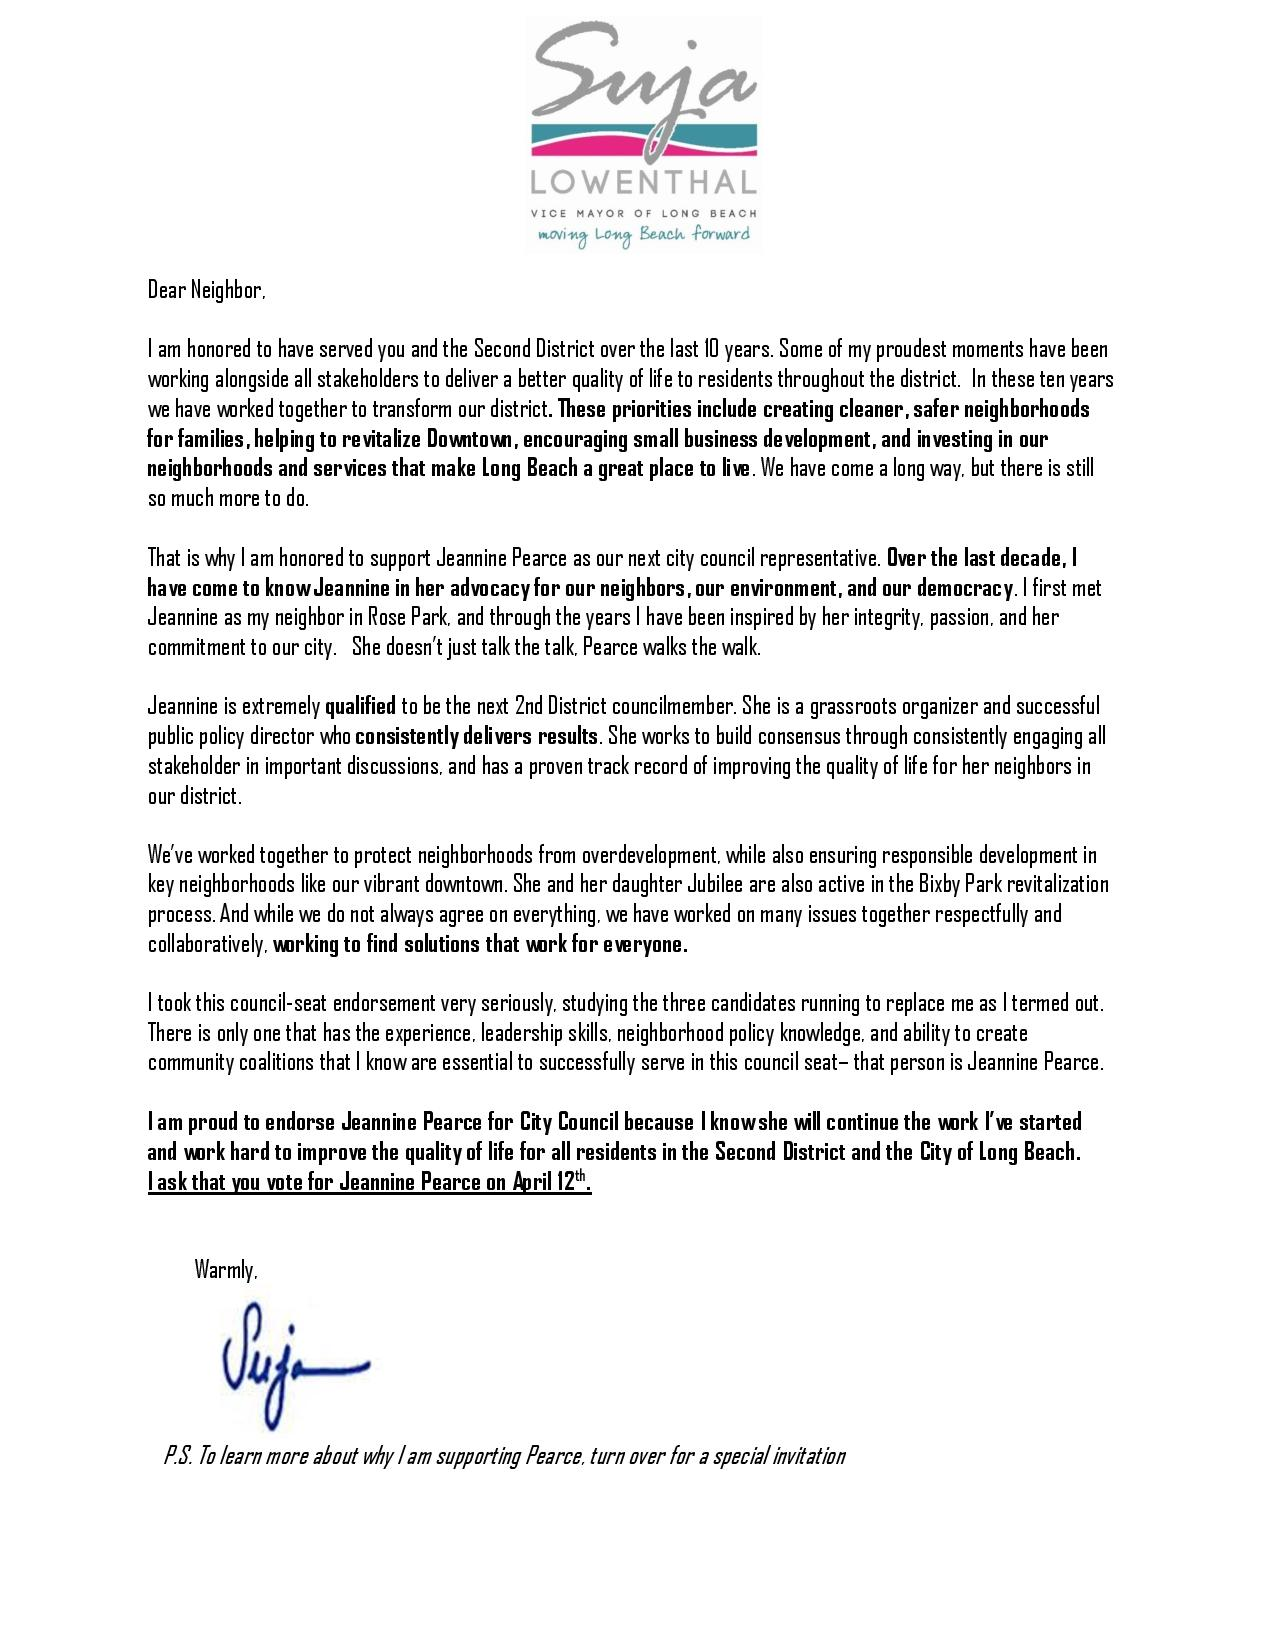 Suja_letter_for_Pearce-page-001.jpg